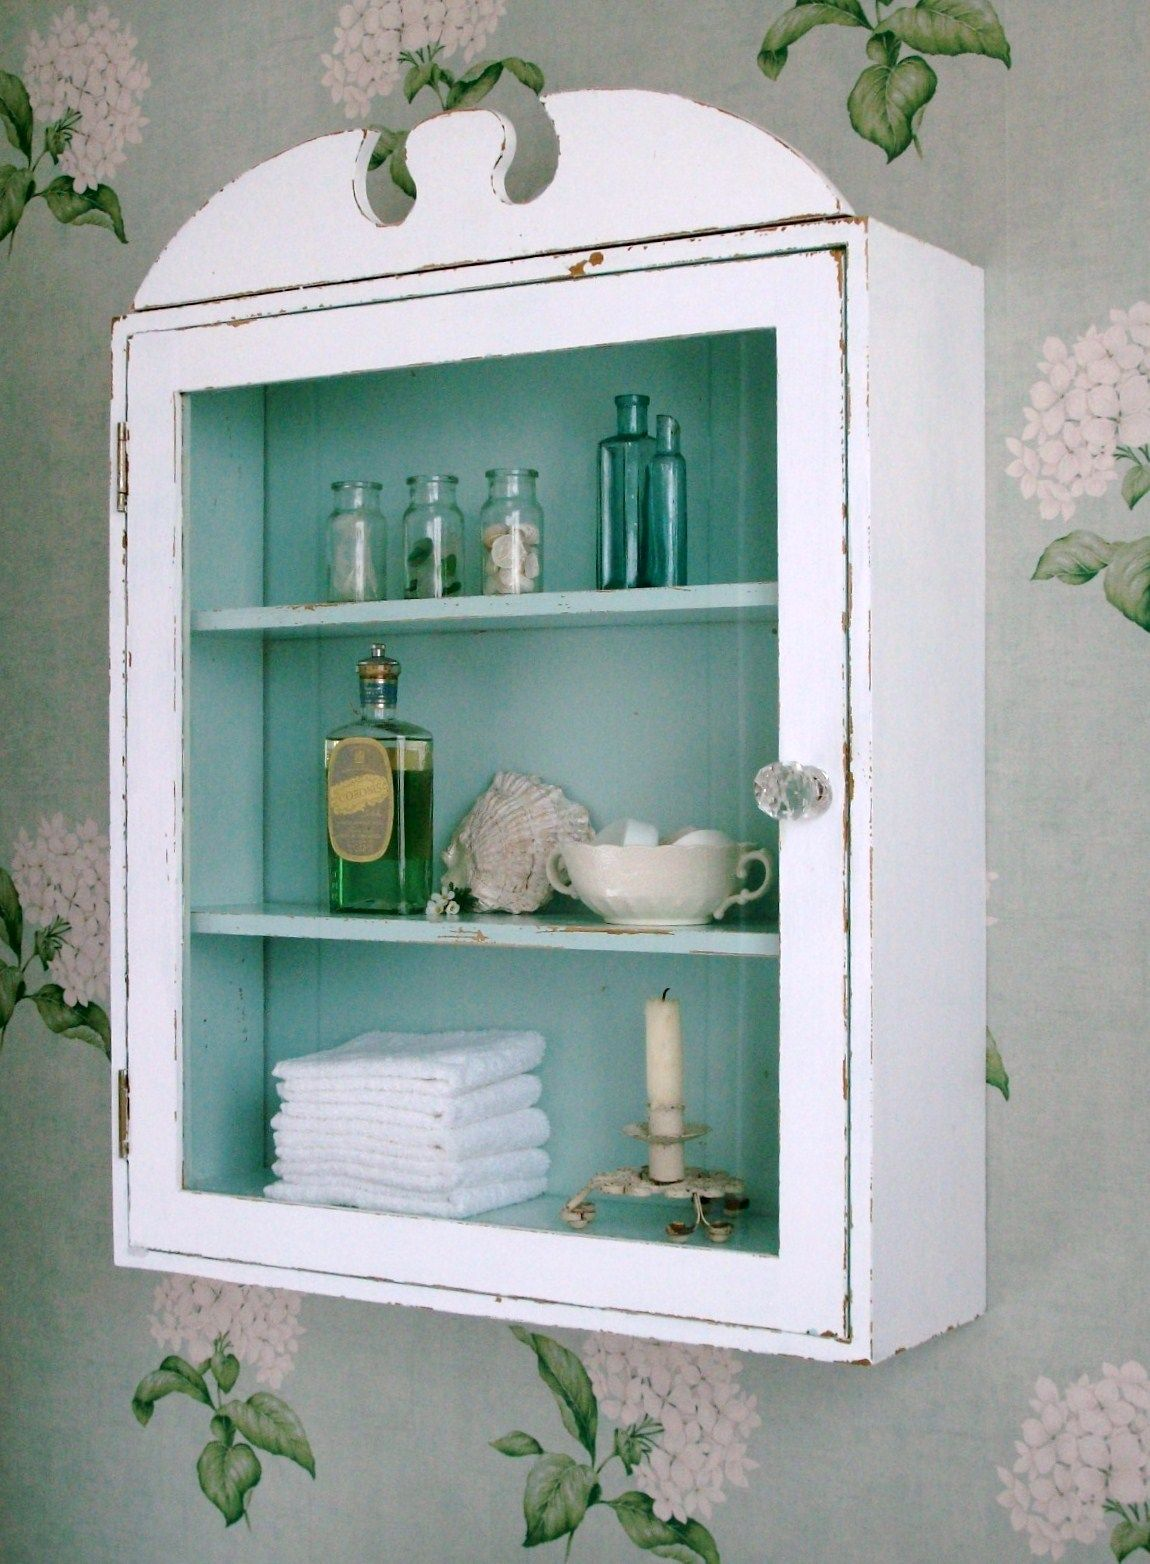 9 Clever Ways to Organize Your Medicine Cabinet